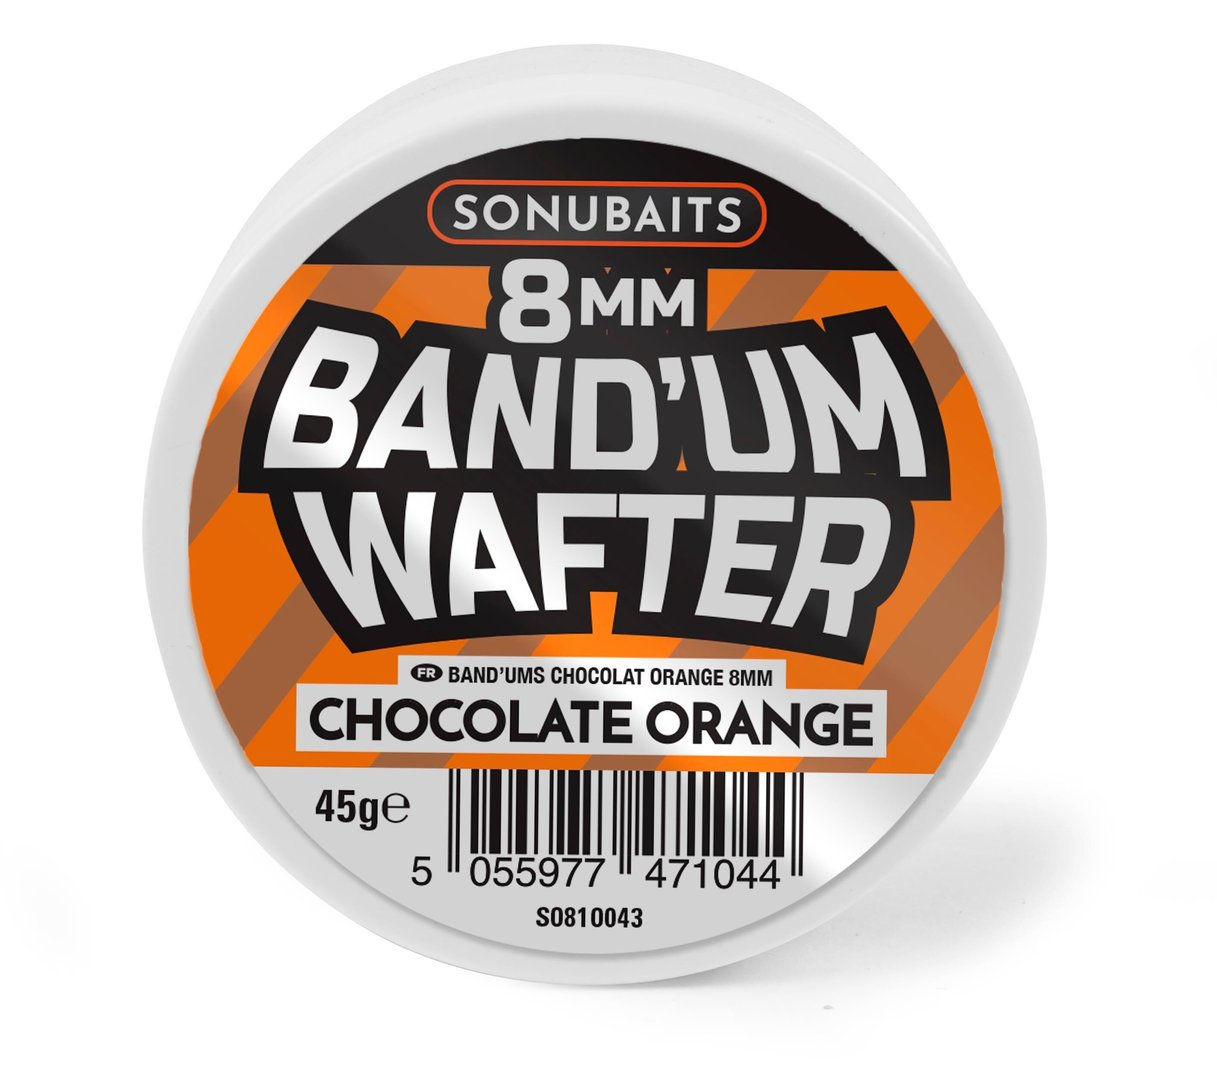 Sonubaits Band'um Wafter - Chocolate Orange - 8mm